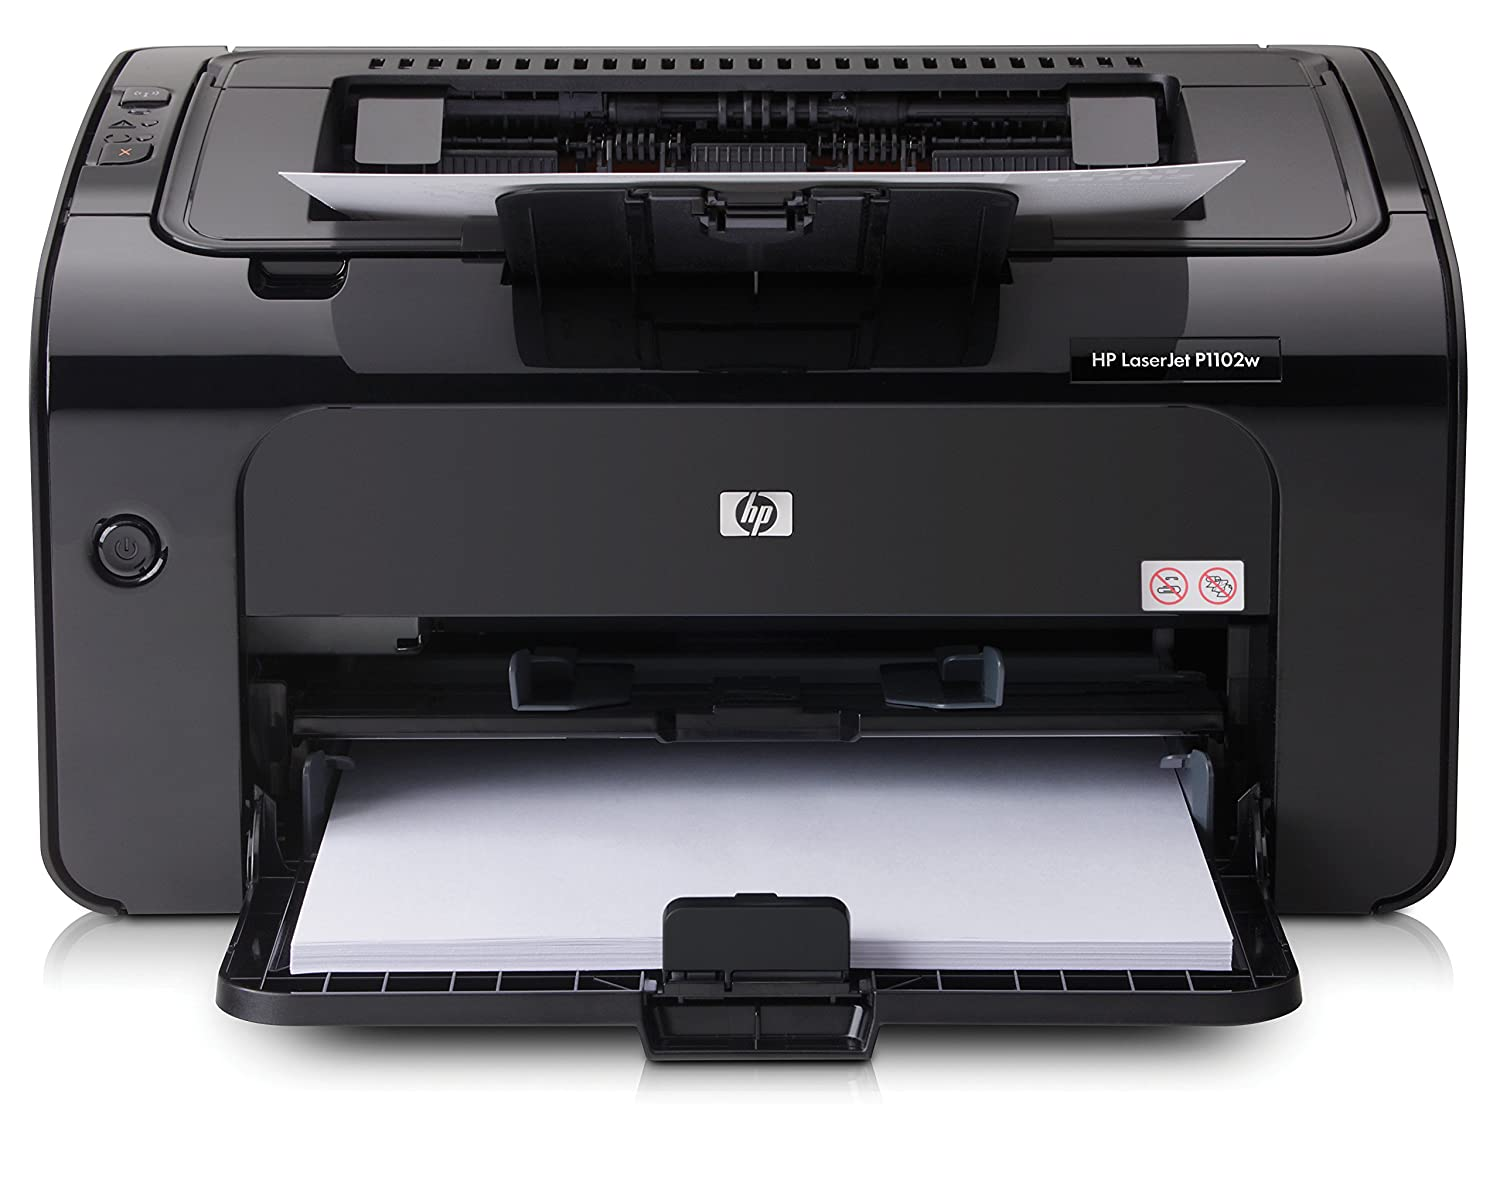 HP 1102 laser printer: specifications, cartridge, reviews 95